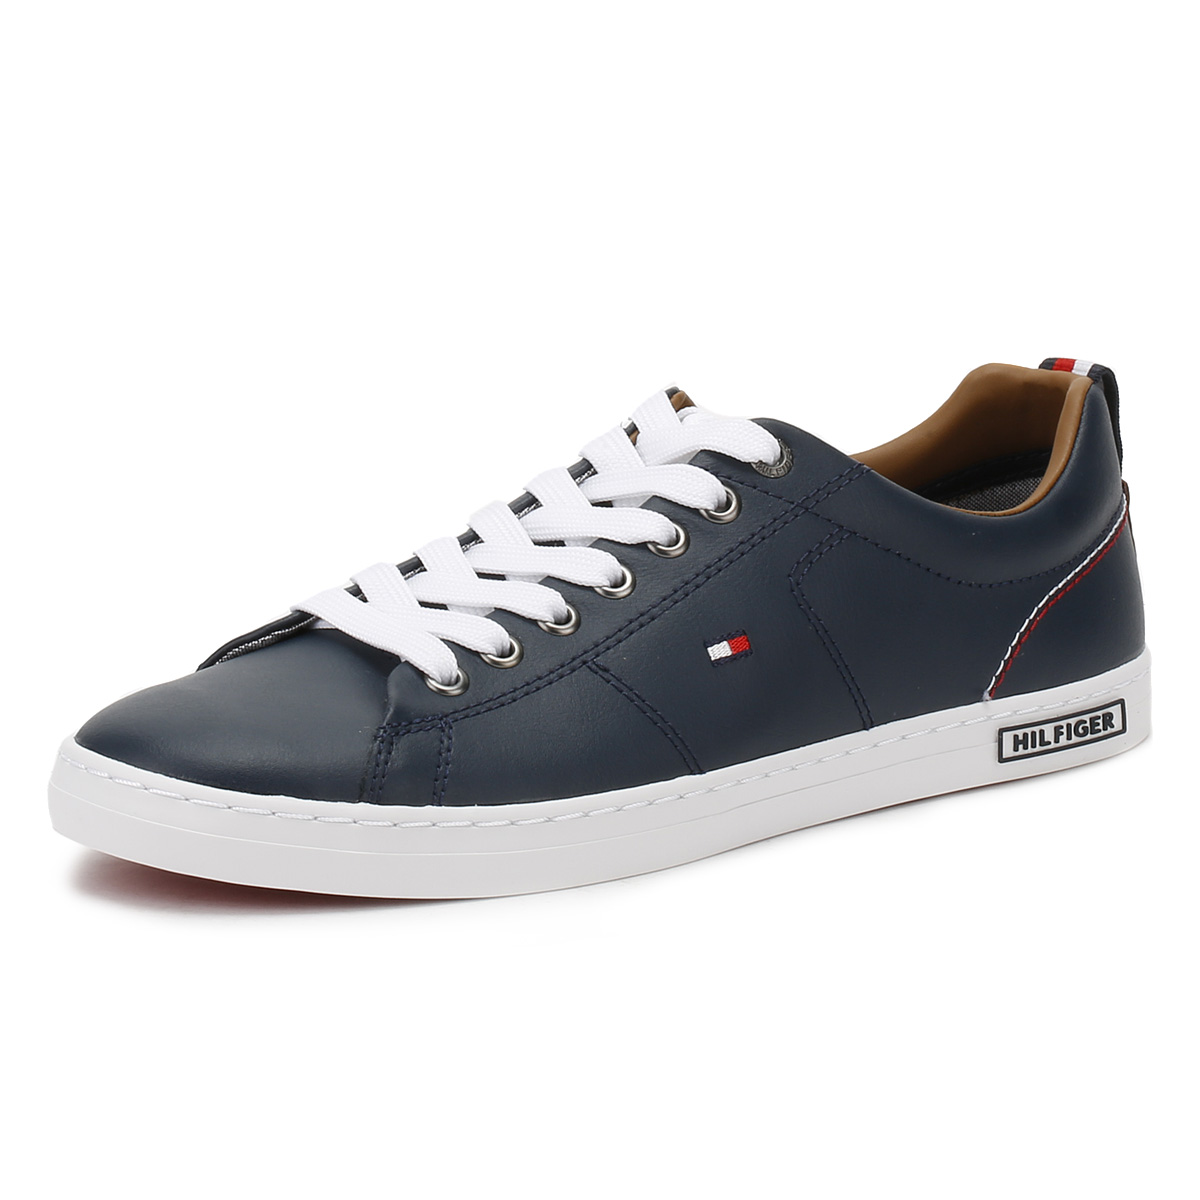 c5a491af5 Details about Tommy Hilfiger Mens Tommy Navy Blue Trainers Lace Up Sport Casual  Shoes K2285AY